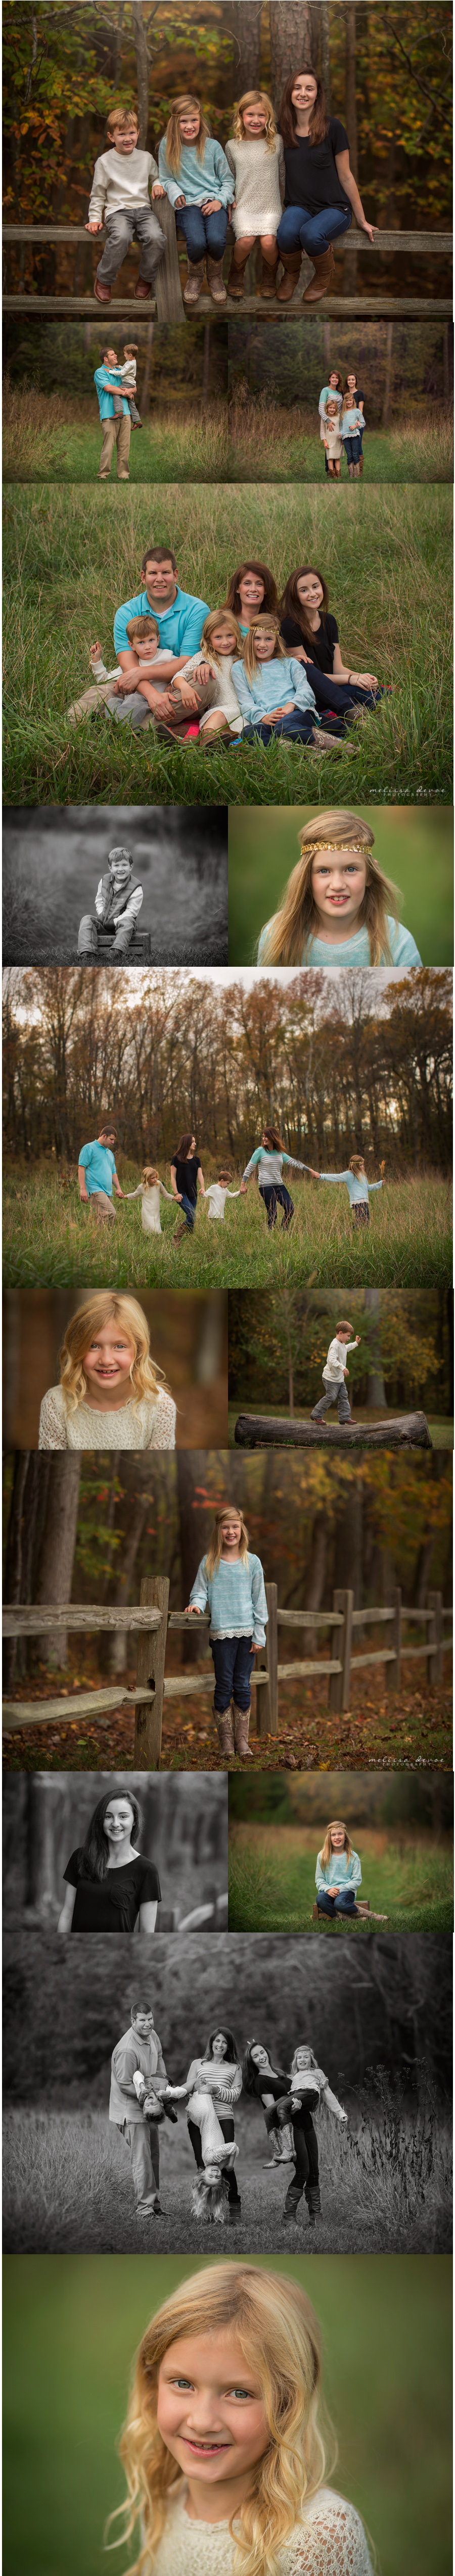 Melissa DeVoe Photography Raleigh Child Family Photographer